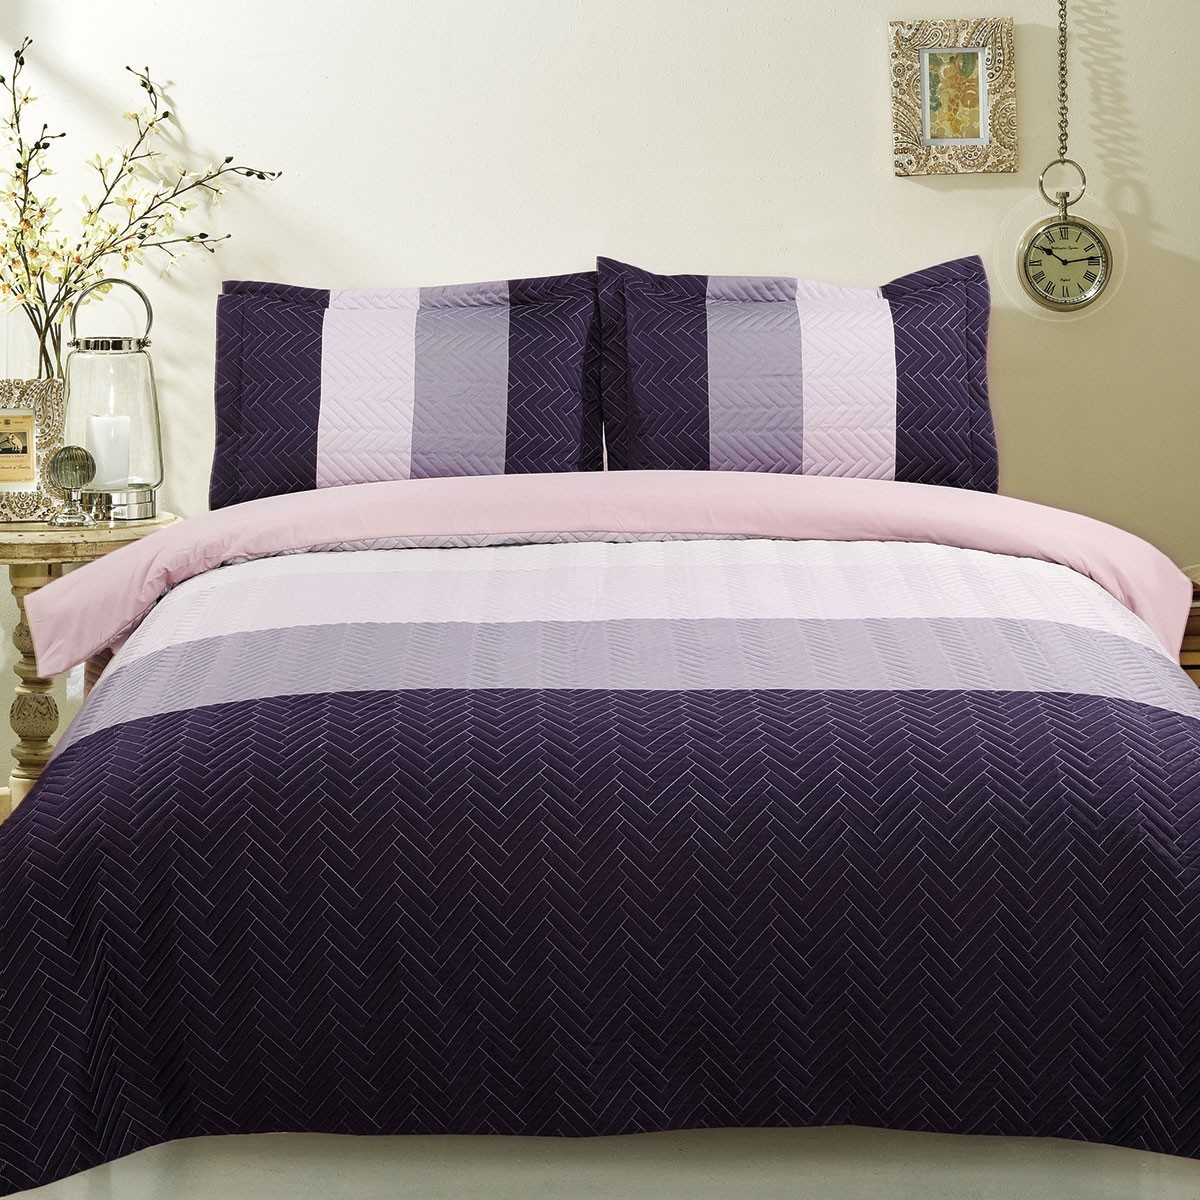 3-Piece Purple Duvet Cover Set (DK-LJ008)